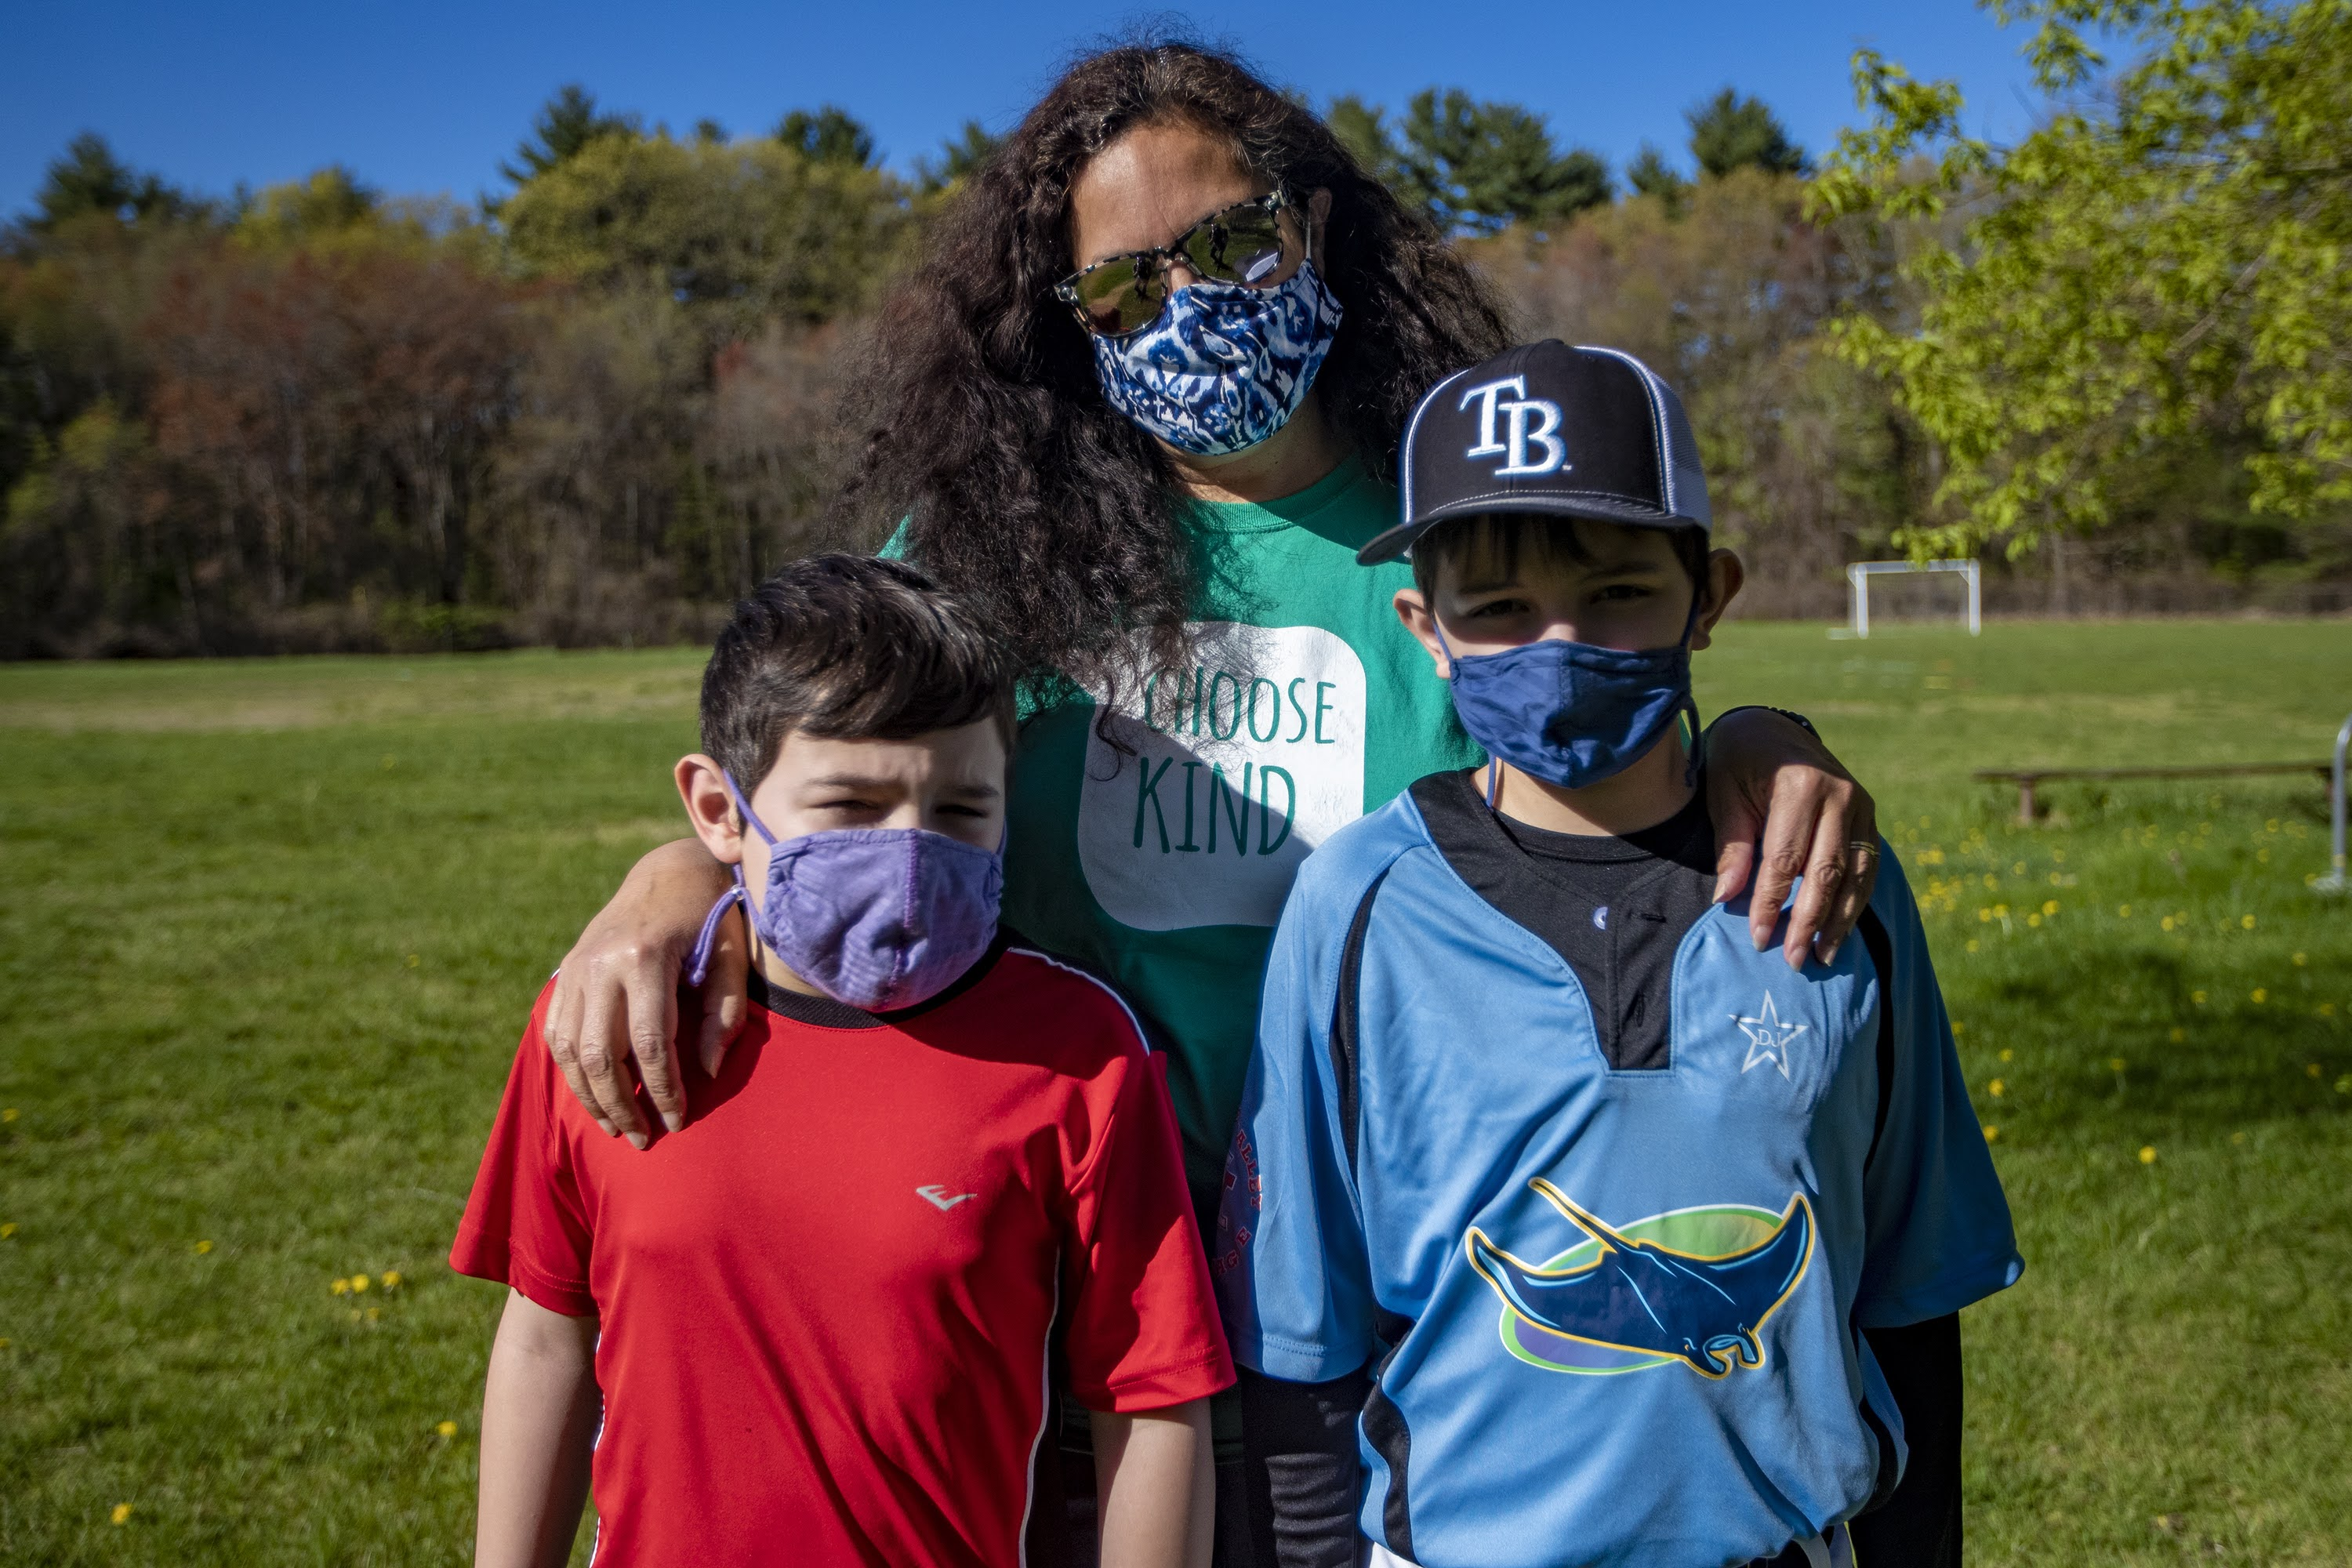 Alex Waldron, center, with her two sons Benjamin, 9, and Thomas, 11, in Maynard. (Jesse Costa/WBUR)